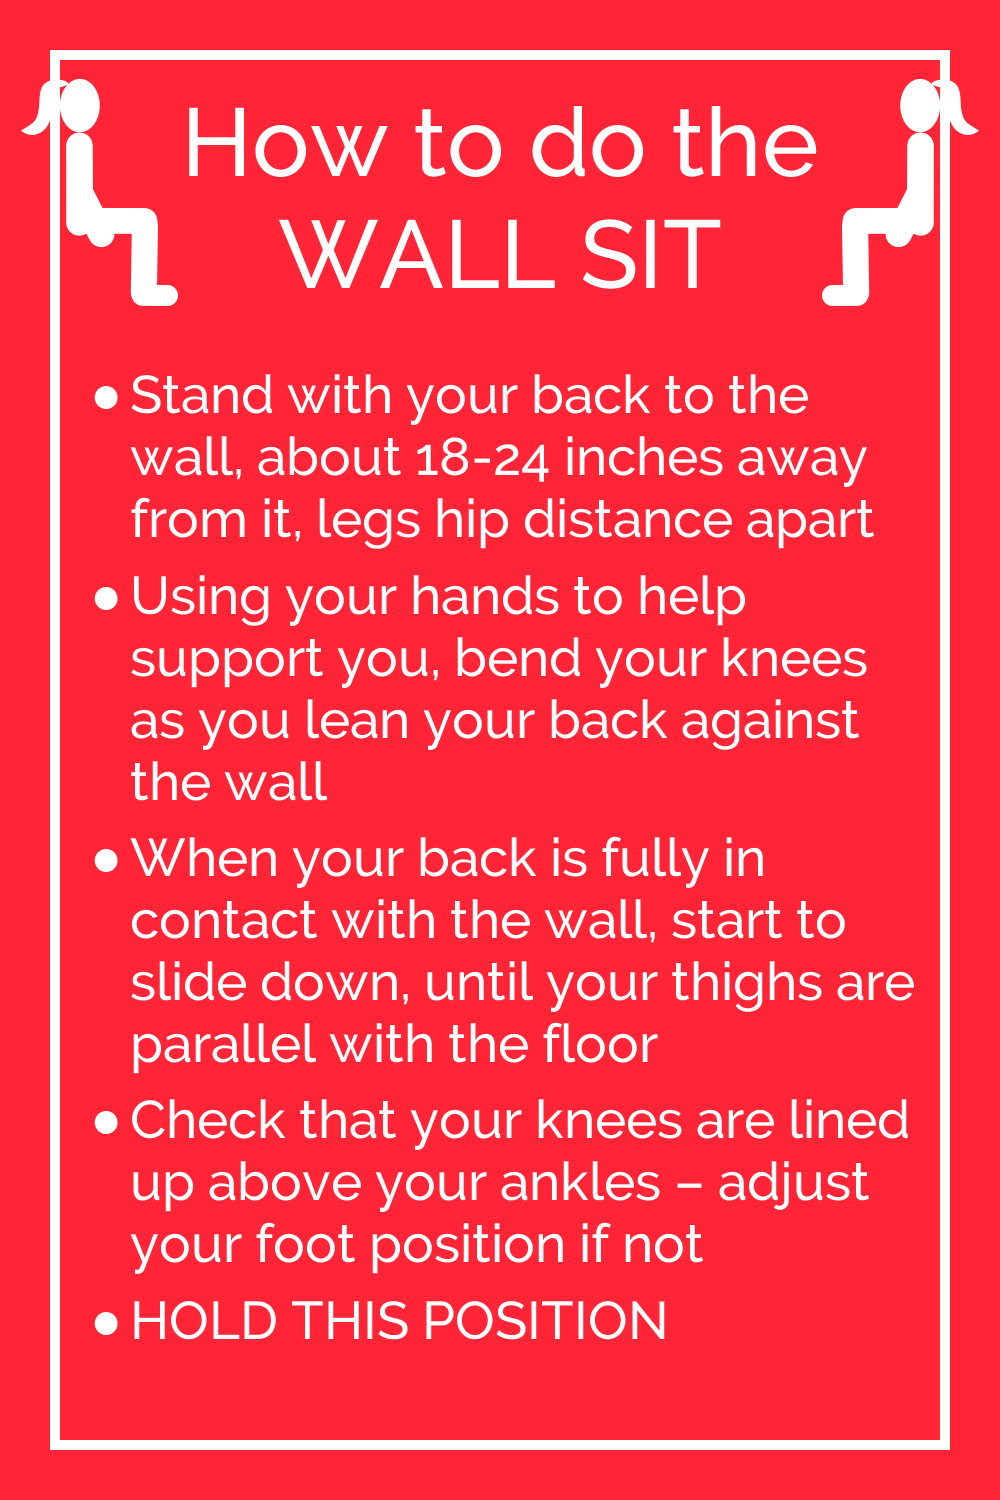 How to do the wall sit